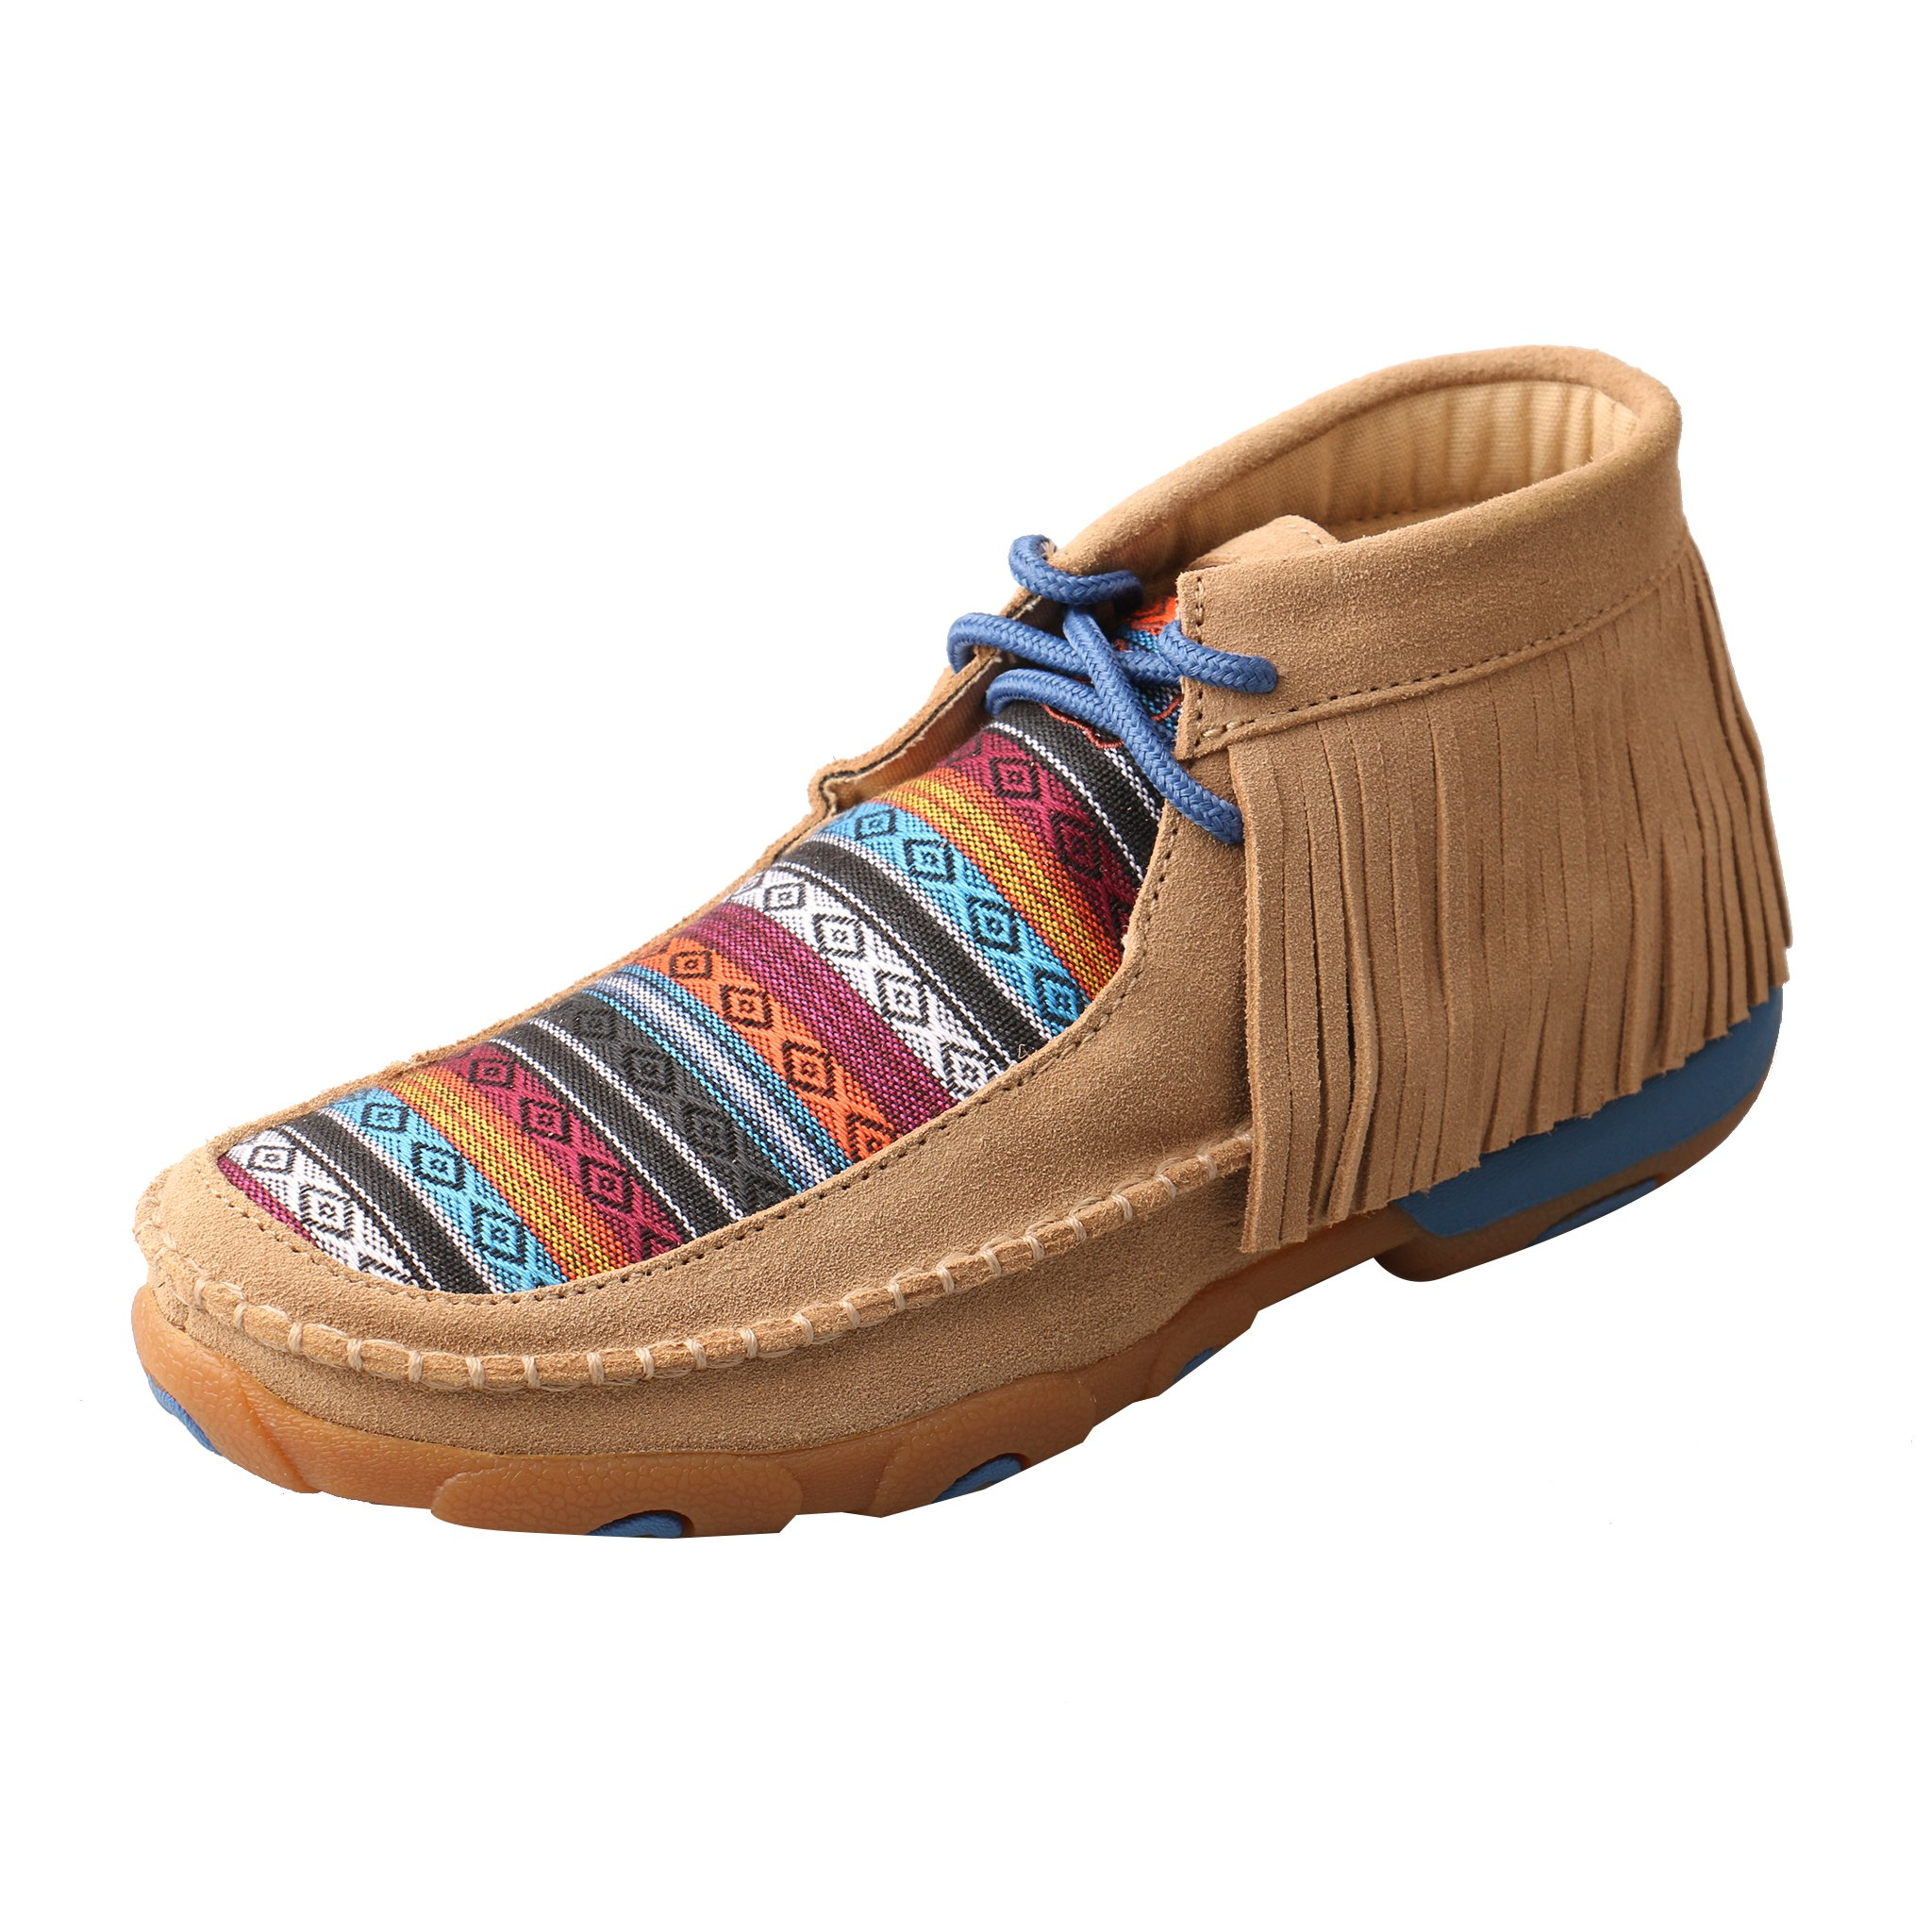 Twisted X Women's Leather Lace-Up Rubber Sole Driving Moccasins - Serape/Fringe